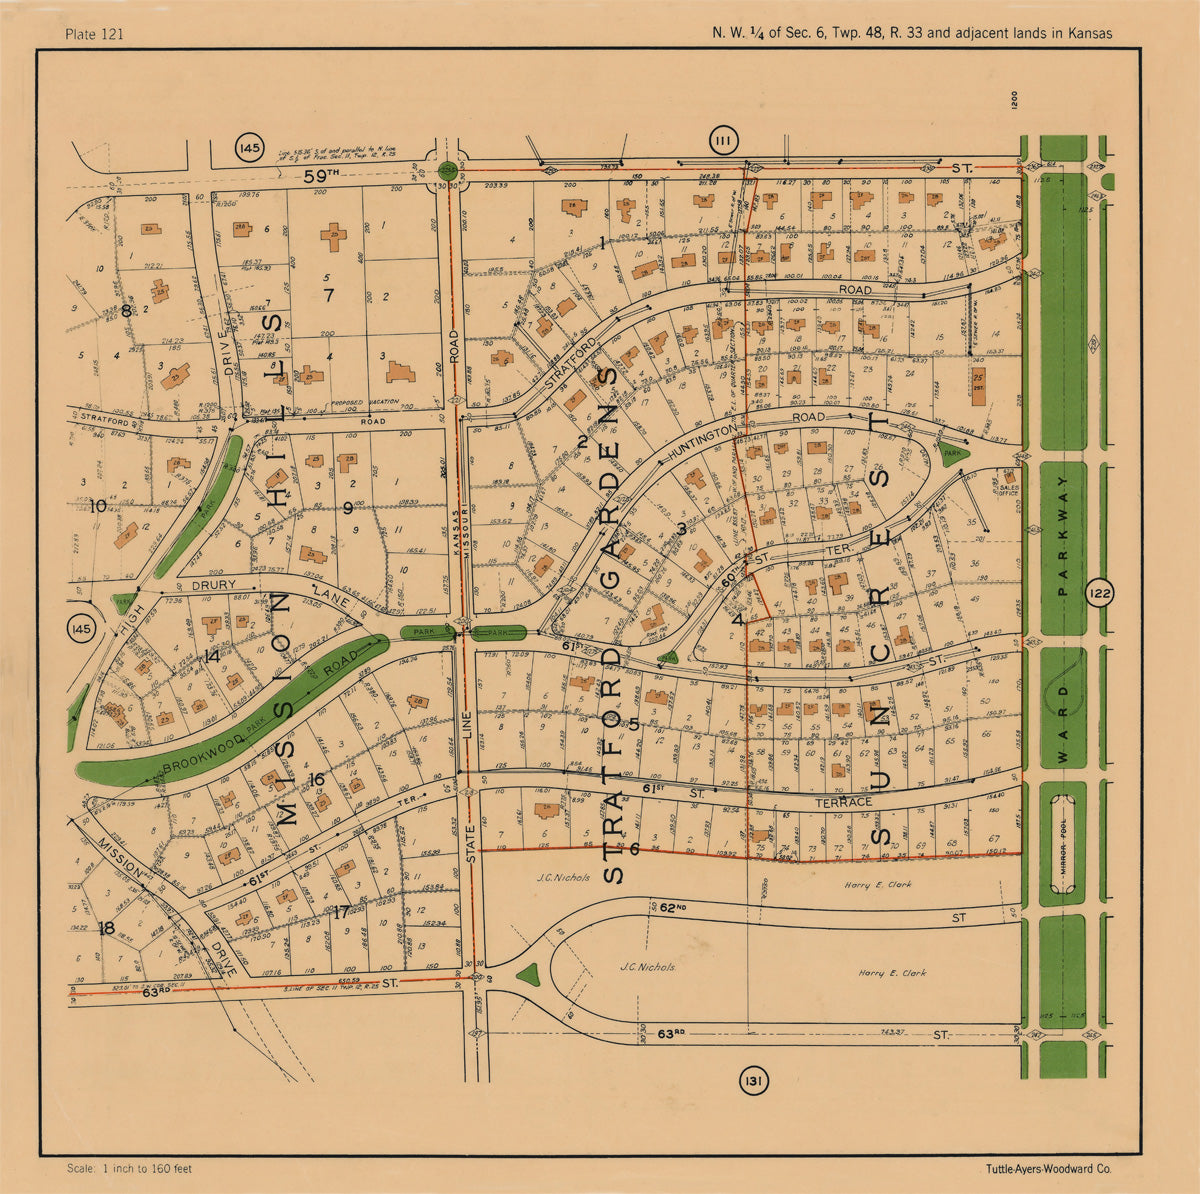 Kansas City 1925 Neighborhood Map - Plate #121 59th-63rd High Dr-Ward Pkwy